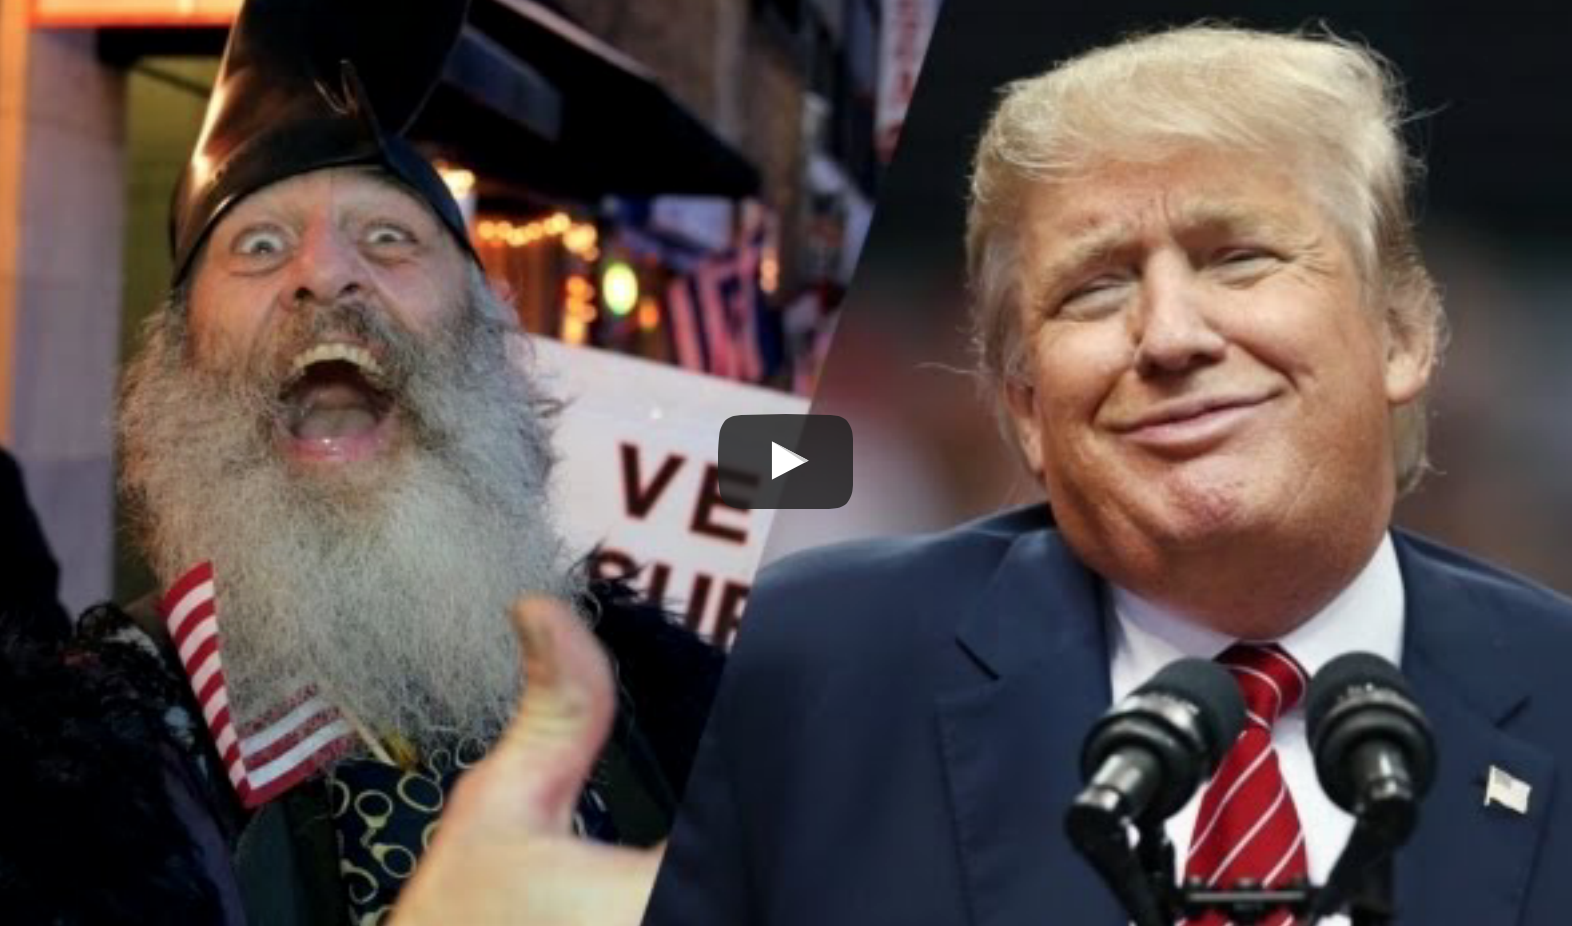 [Another HILARIOUS VIDEO] Vermin Supreme! He Paved The Way For Donald Trump And Here's How He Did It!